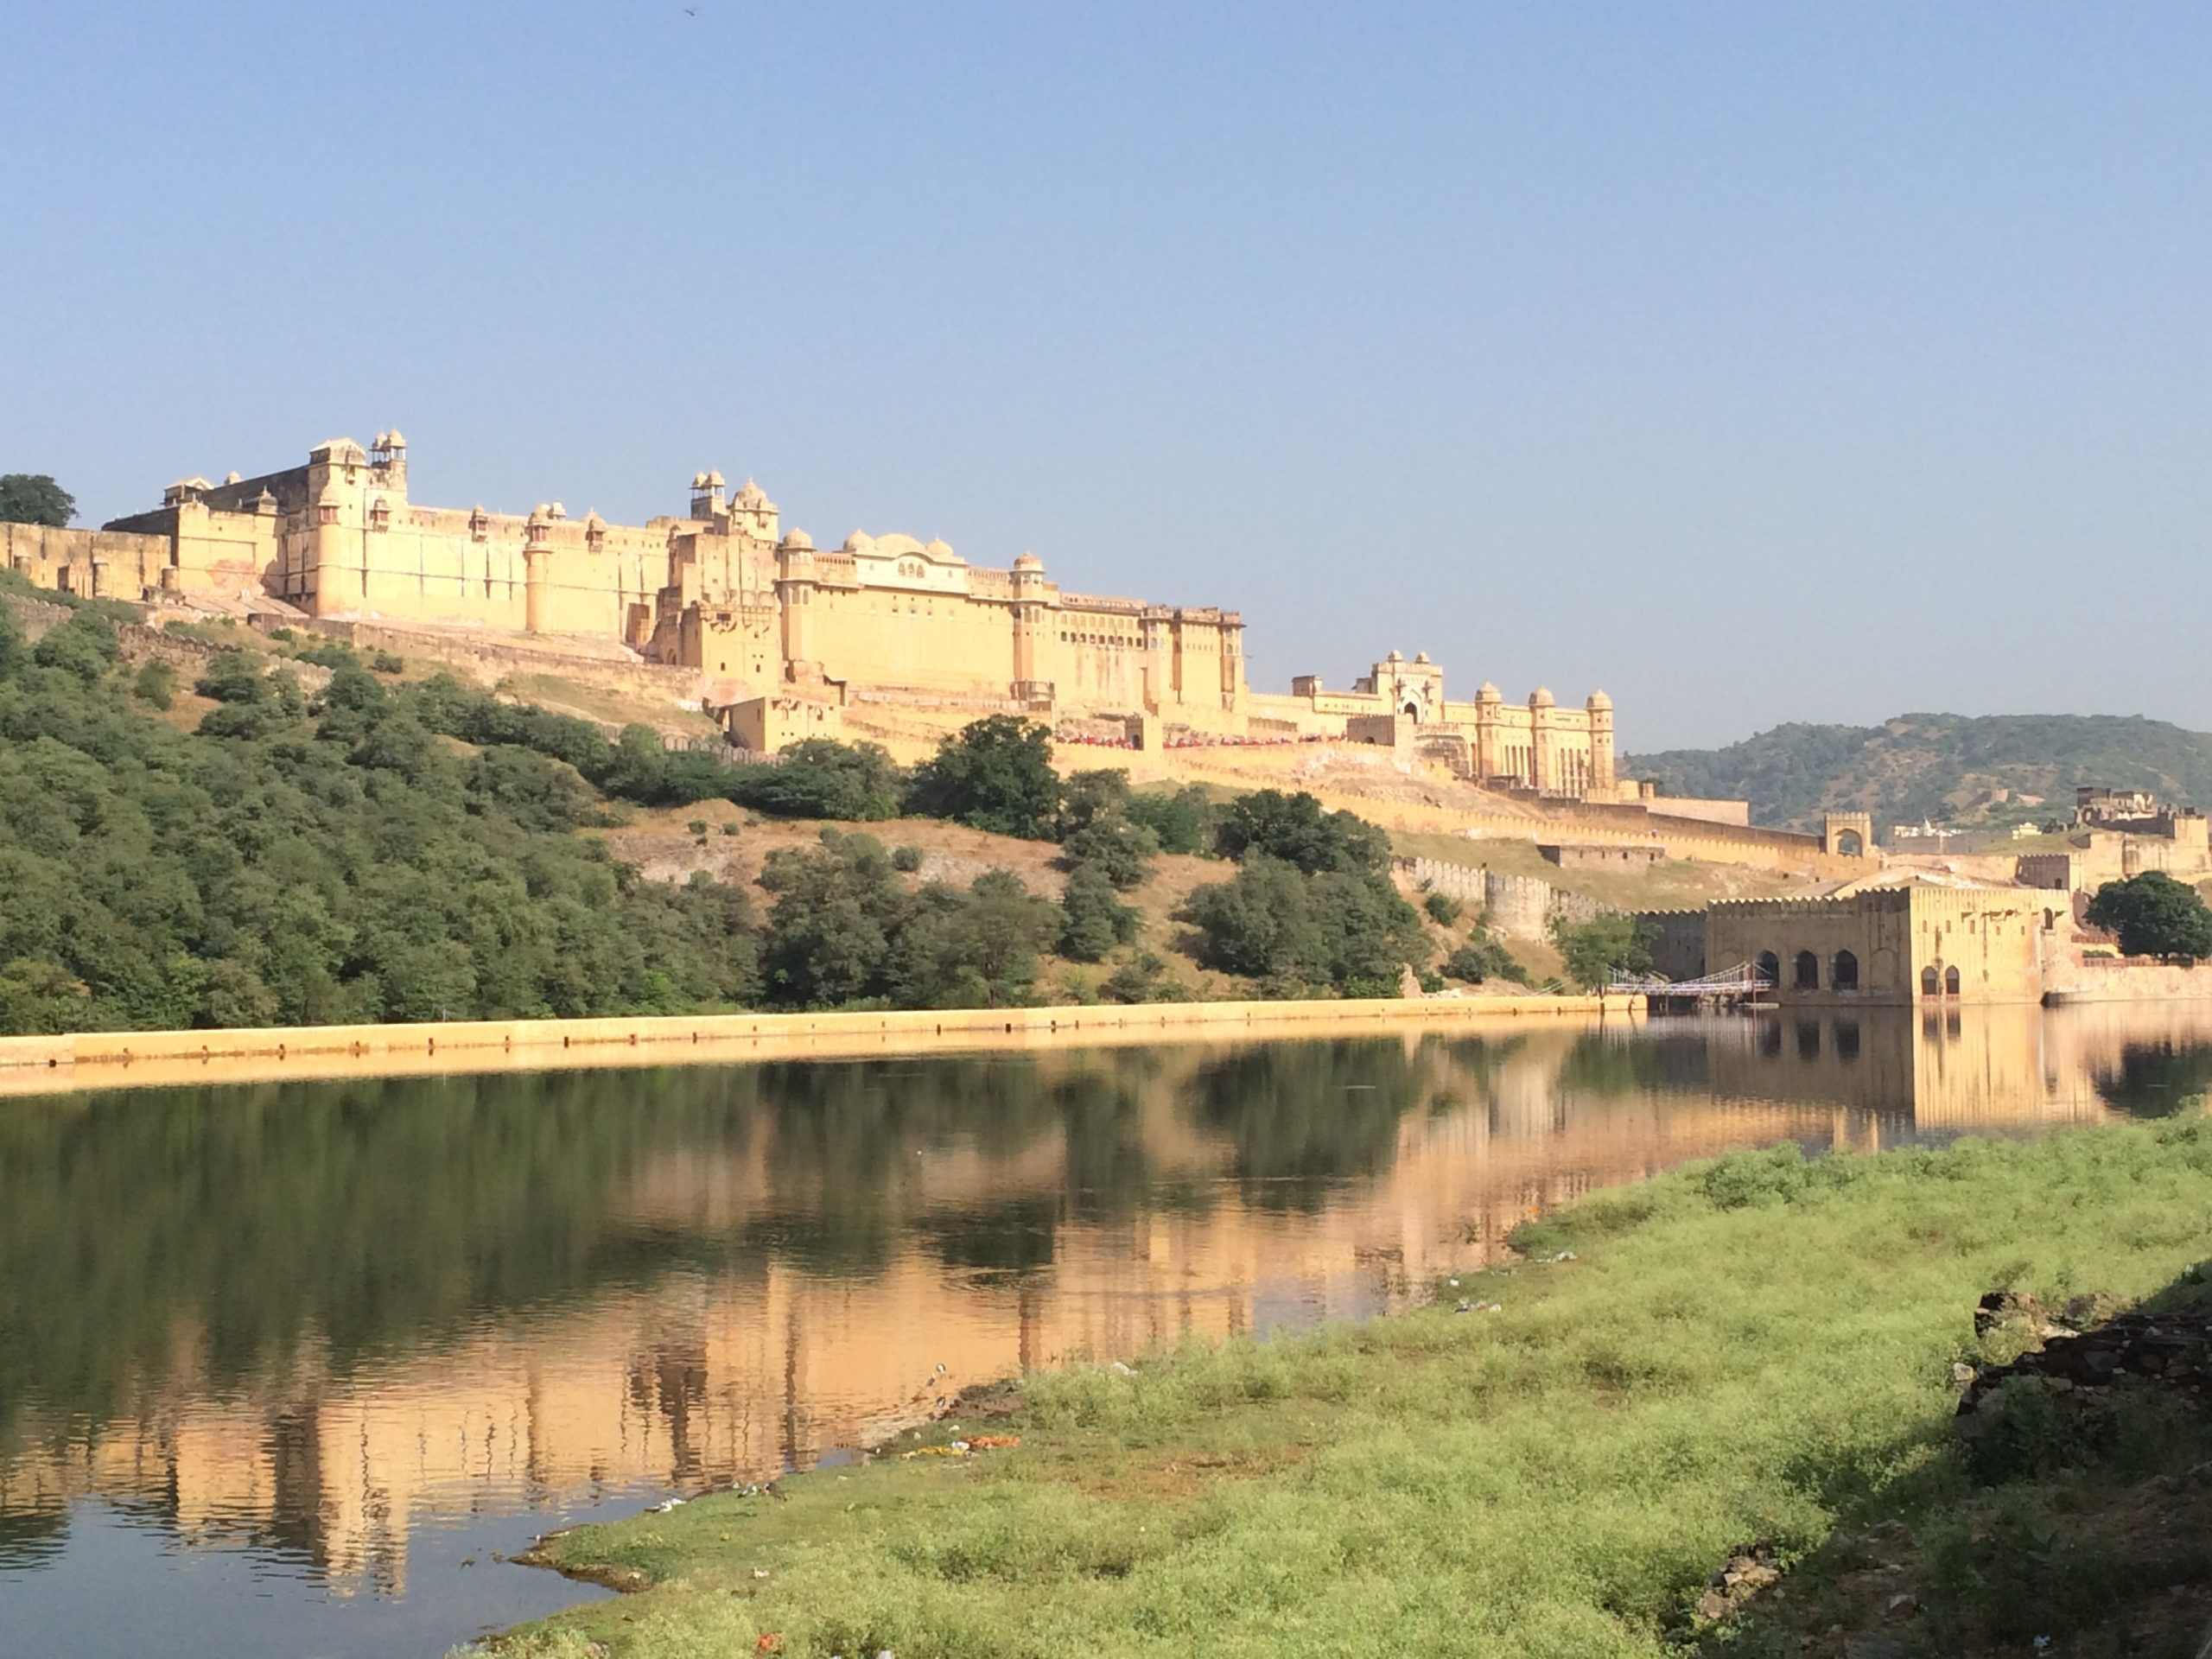 Amber Fort seen from a distance over some grass and a river.